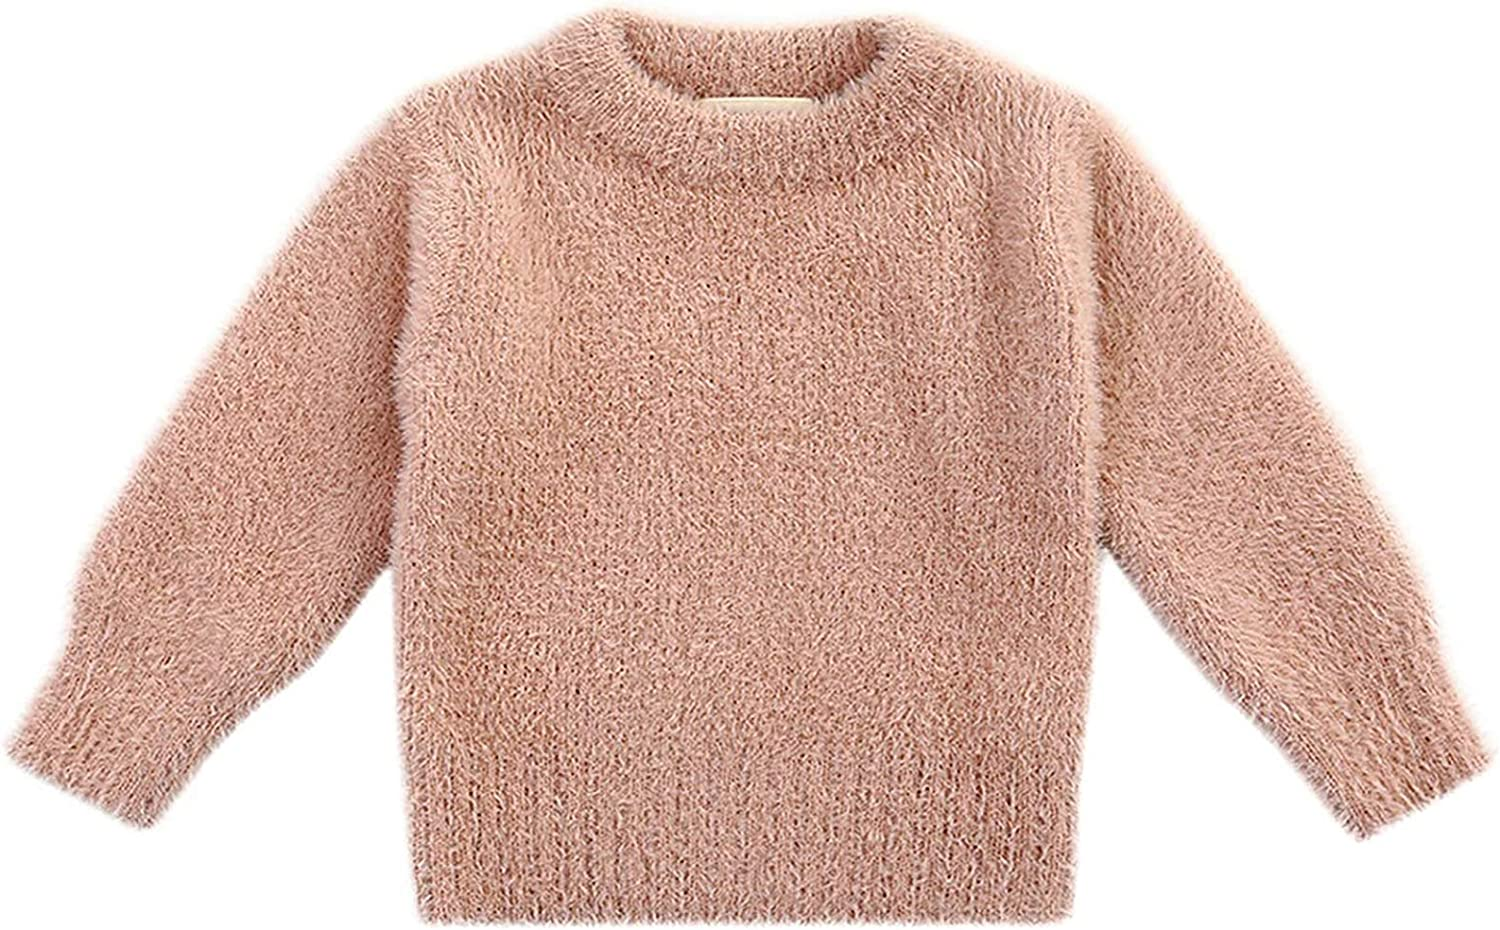 Toddler Baby Girl Fuzzy Sweater Long Cozy Austin Mall 1- Top Sleeve Pullover Los Angeles Mall